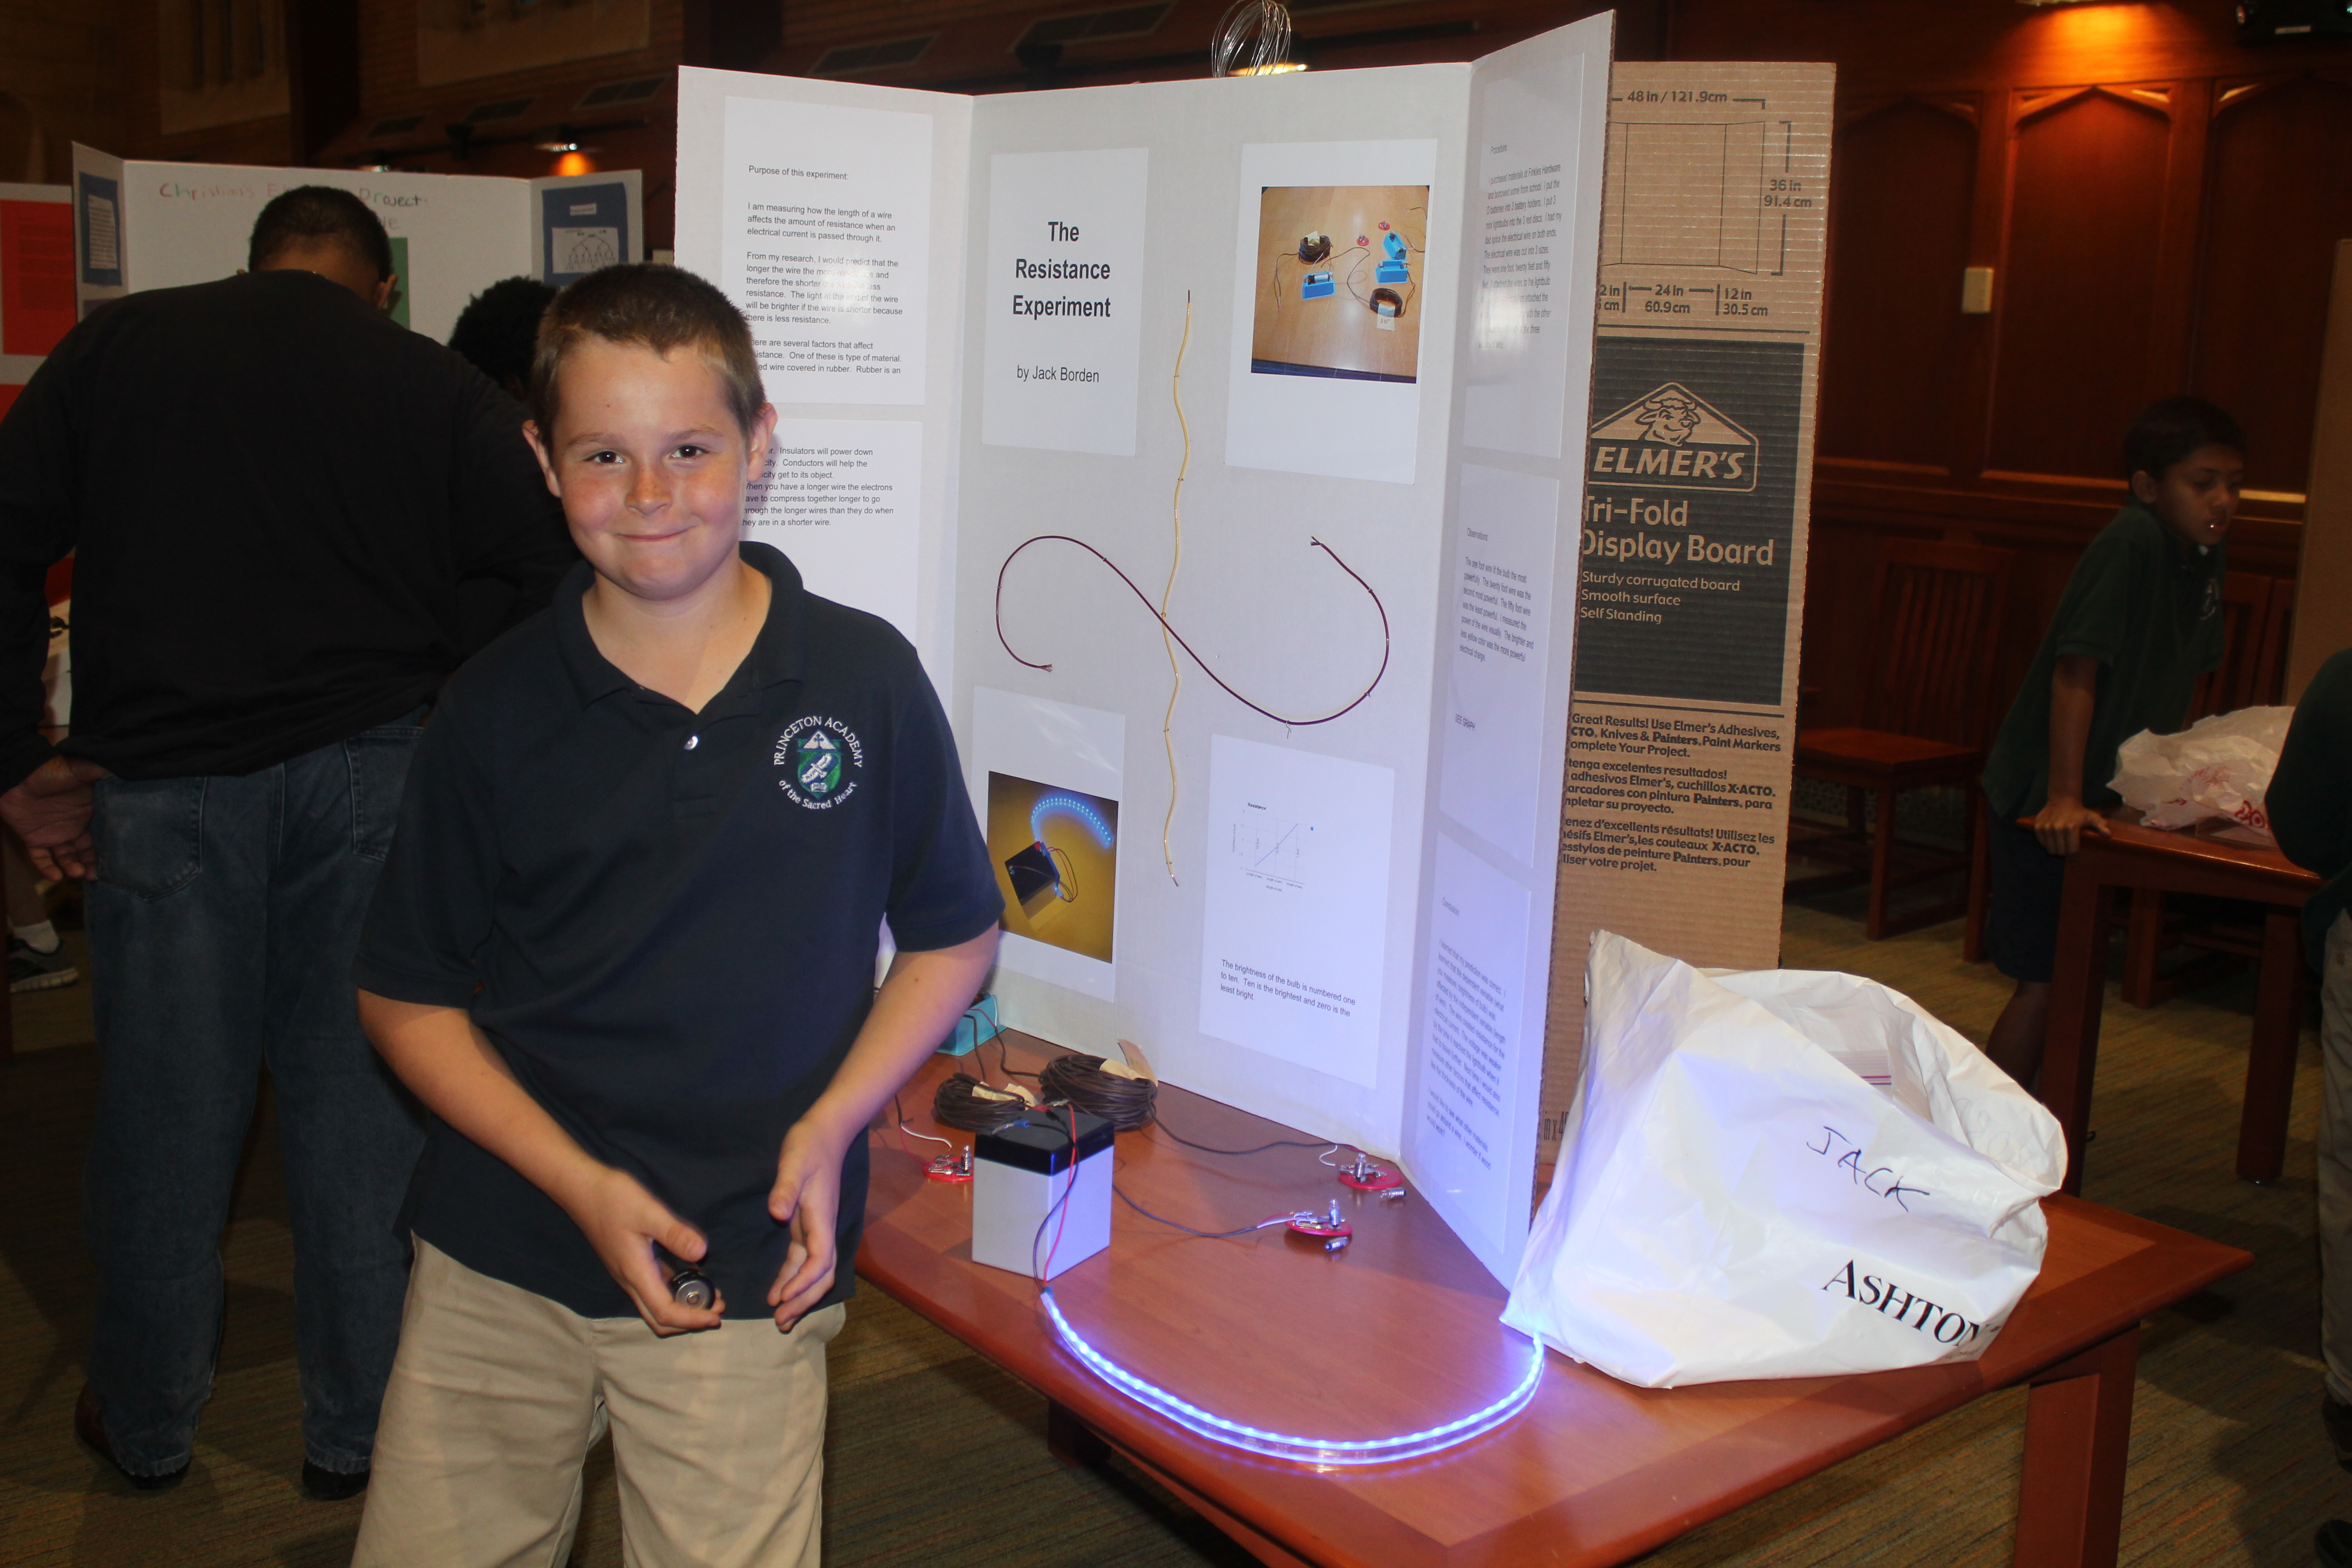 more-science  Th Grade Science Projects For Electricity on 4th grade math, 4th grade static electricity worksheet, activities for 4th grade electricity, 4th grade energy, science fair boards about electricity, home projects electricity, research about static electricity, 4th grade scientific method projects, cool science projects electricity, science fair projects electricity, 4th grade class rules,